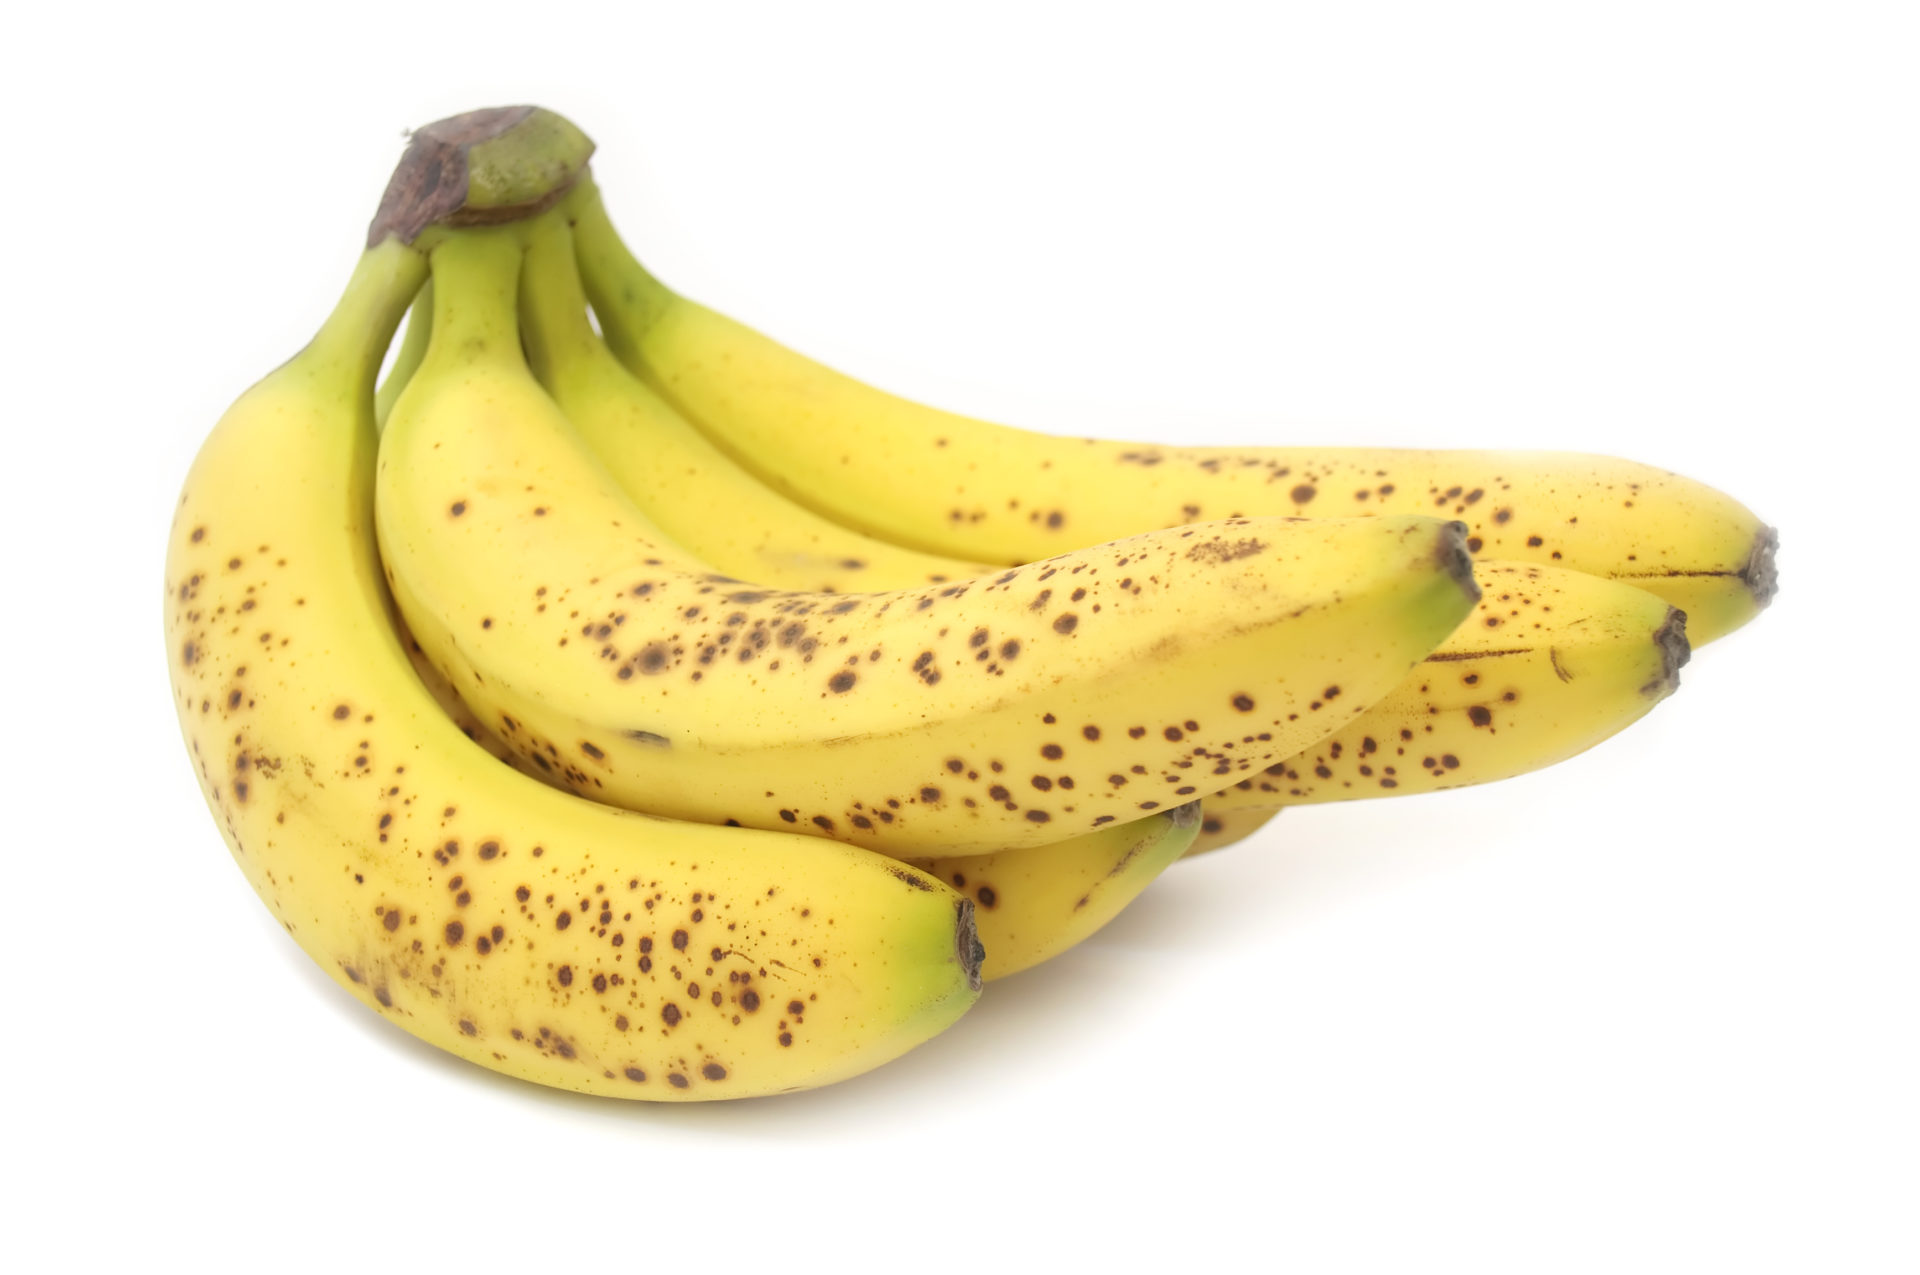 Bananas: How to Select, Store & Serve